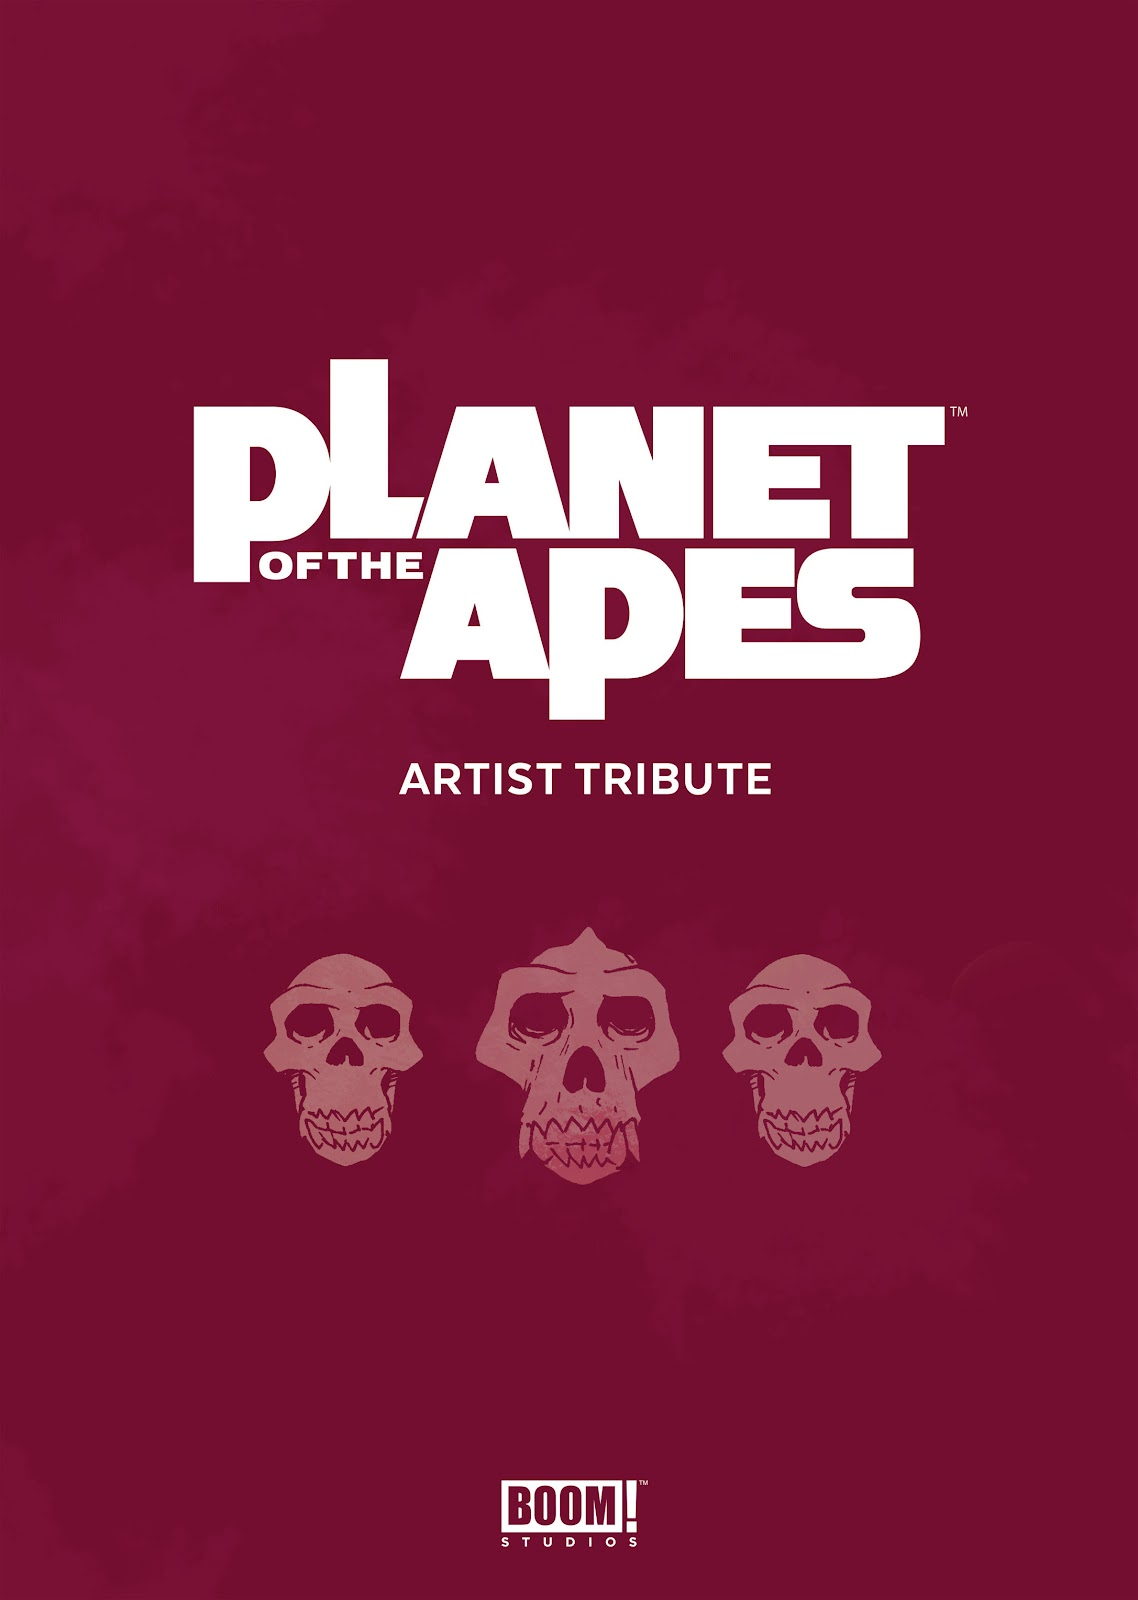 Read online Planet of the Apes Artist Tribute comic -  Issue # TPB - 3